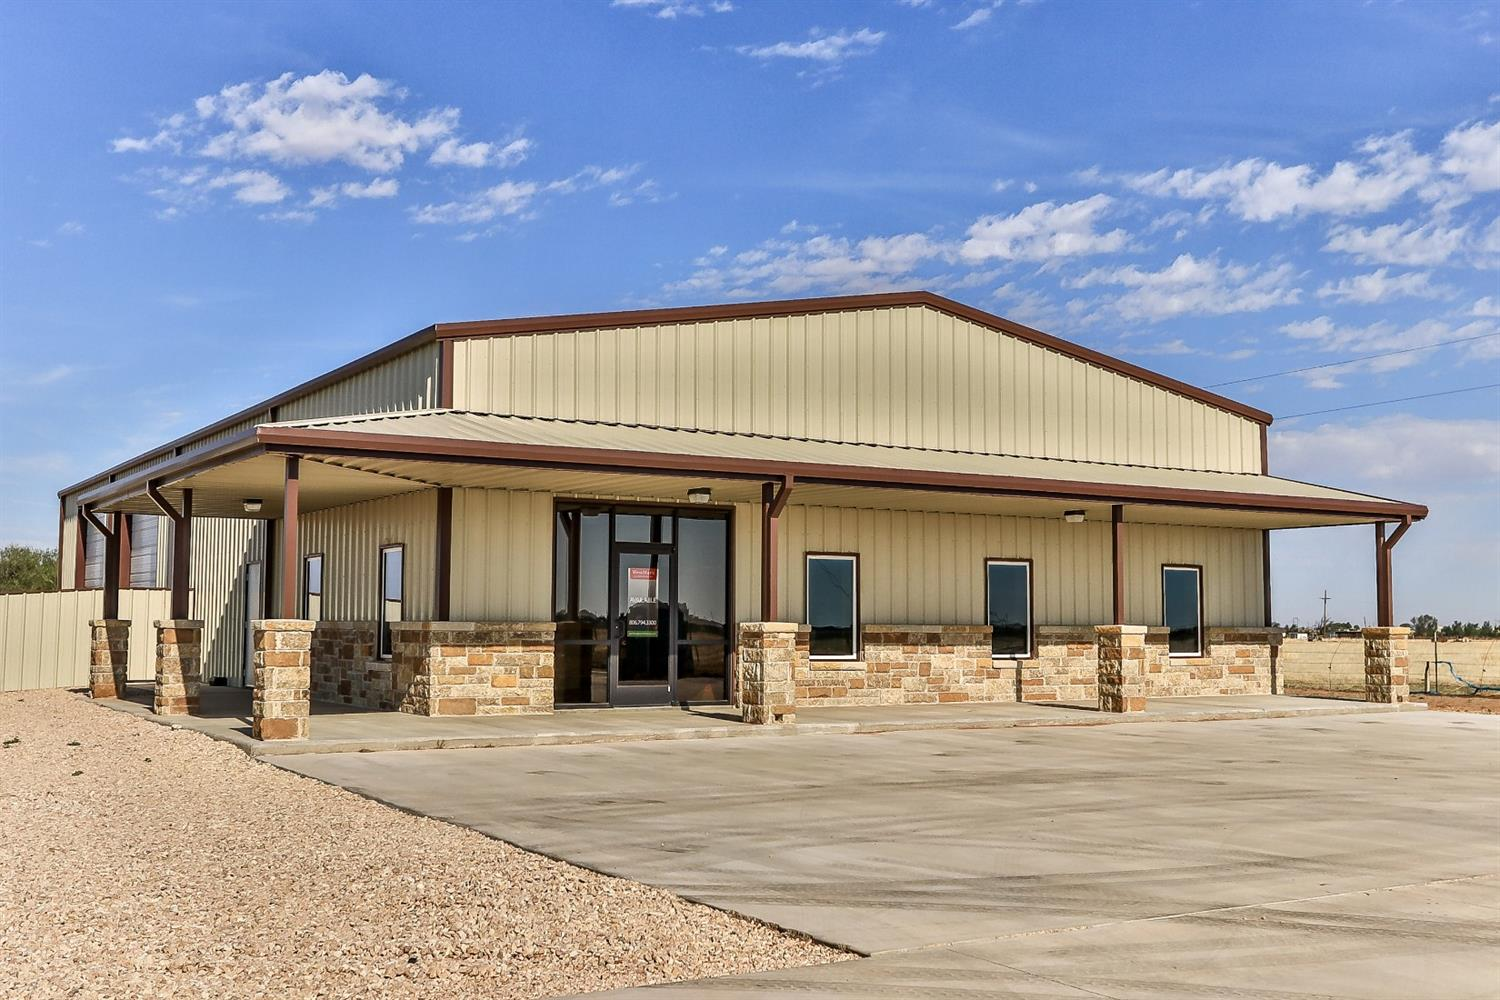 5,000 SF office / warehouse which includes, well, septic, concrete drive, fully fenced stack yard, and two 14' x 14' overhead doors. Located on a one acre stack lot with 6' metal fencing on FM 1585 right before CR 1300. Loop 88 will pass right in front of the property for easy access. Tenant occupying space. Clear Height: 16'; Overhead Doors: Two - 14'x14'; Fenced: 20' Sliding Gate; Utilities: South Plains Electric Co Op and South Plains Telephone & Internet; Leased Through 9/30/2020